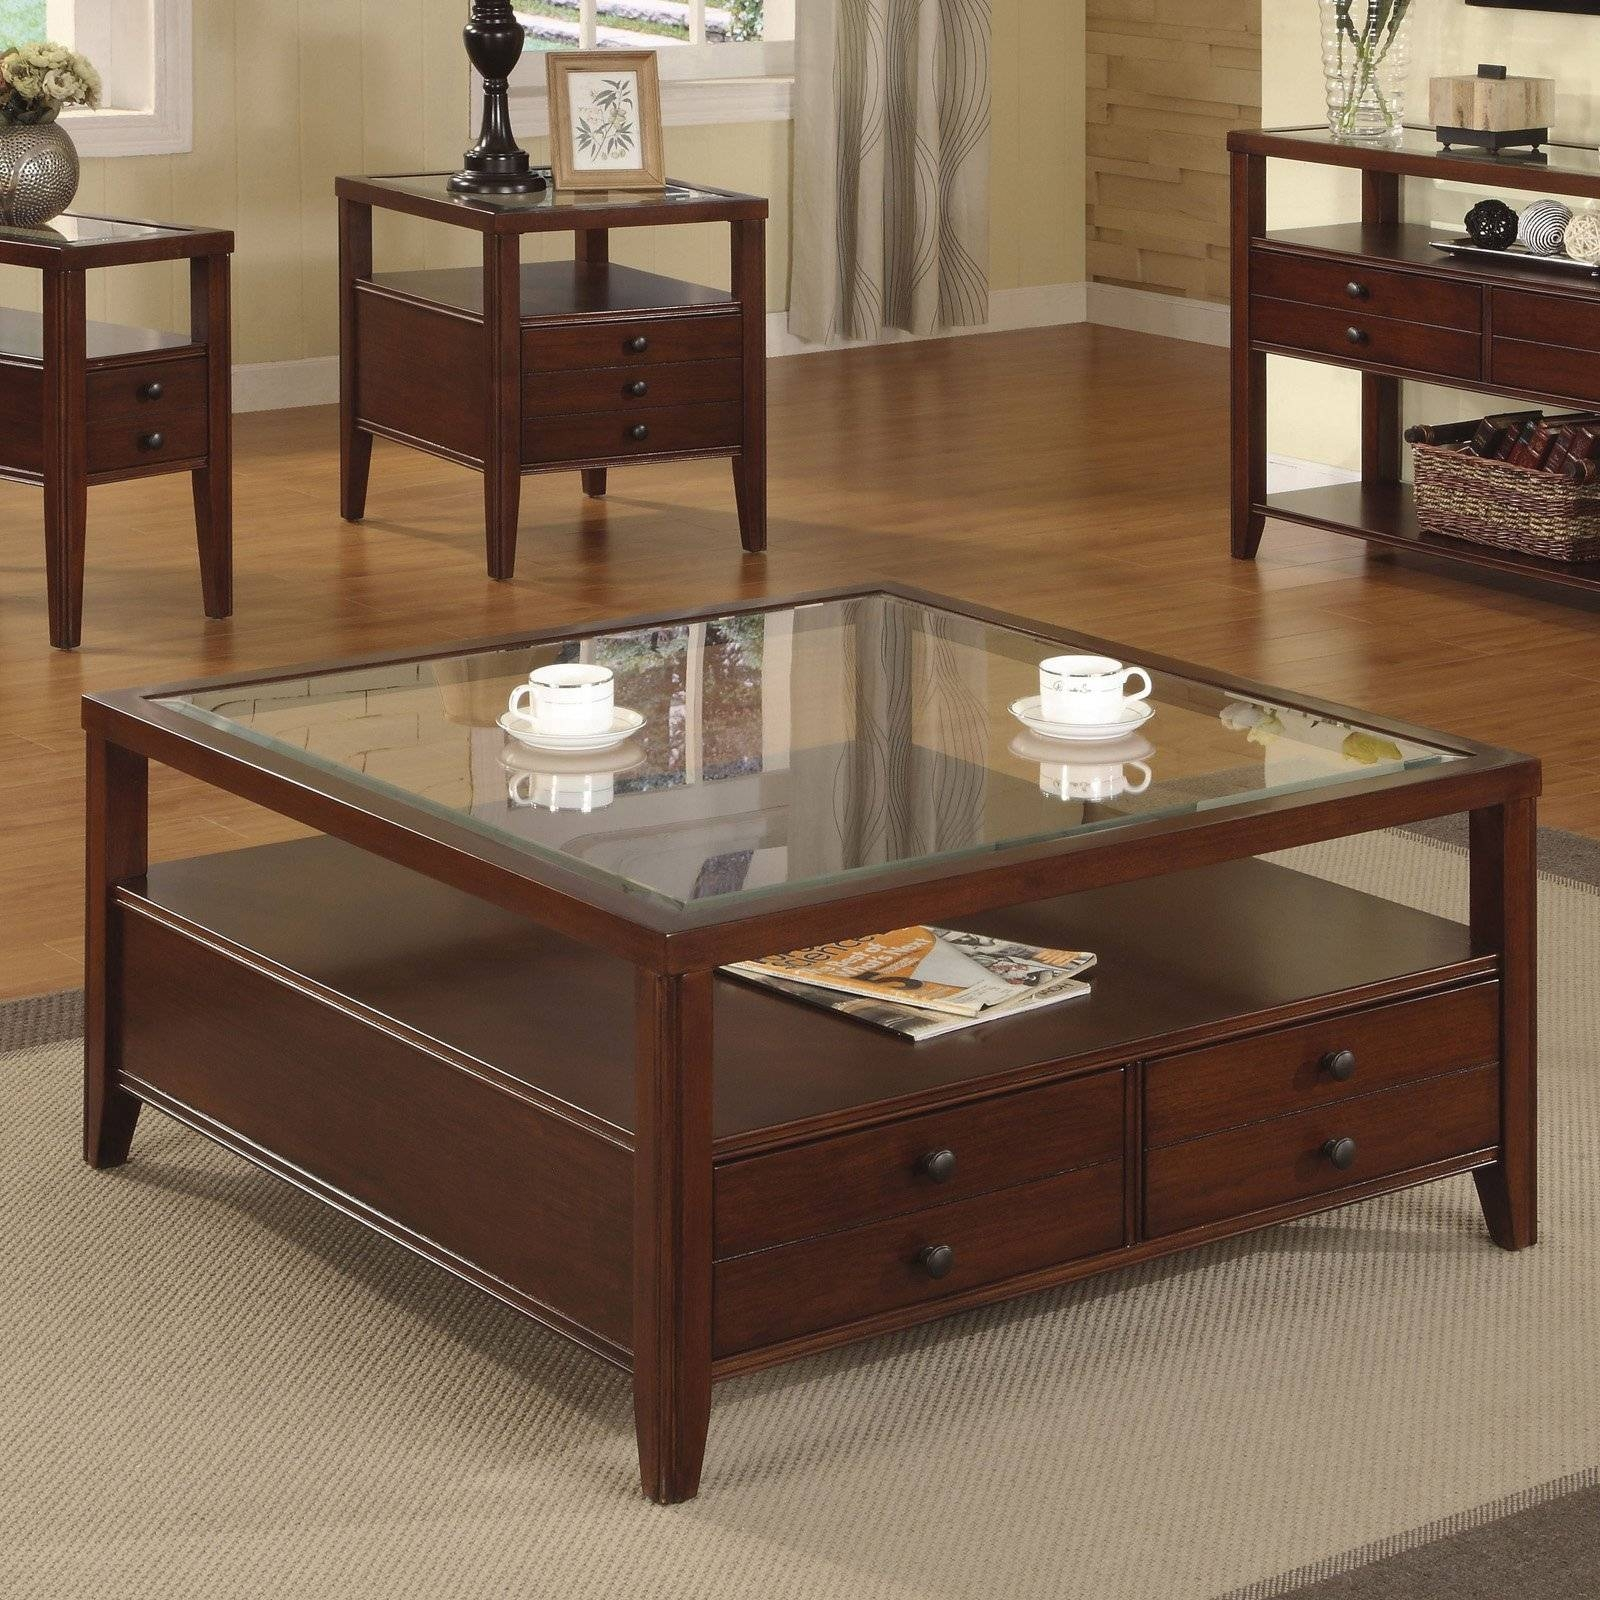 Furniture Glass And Wood Coffee Table. The Angled Gl Provides And in Dark Wood Square Coffee Tables (Image 17 of 30)